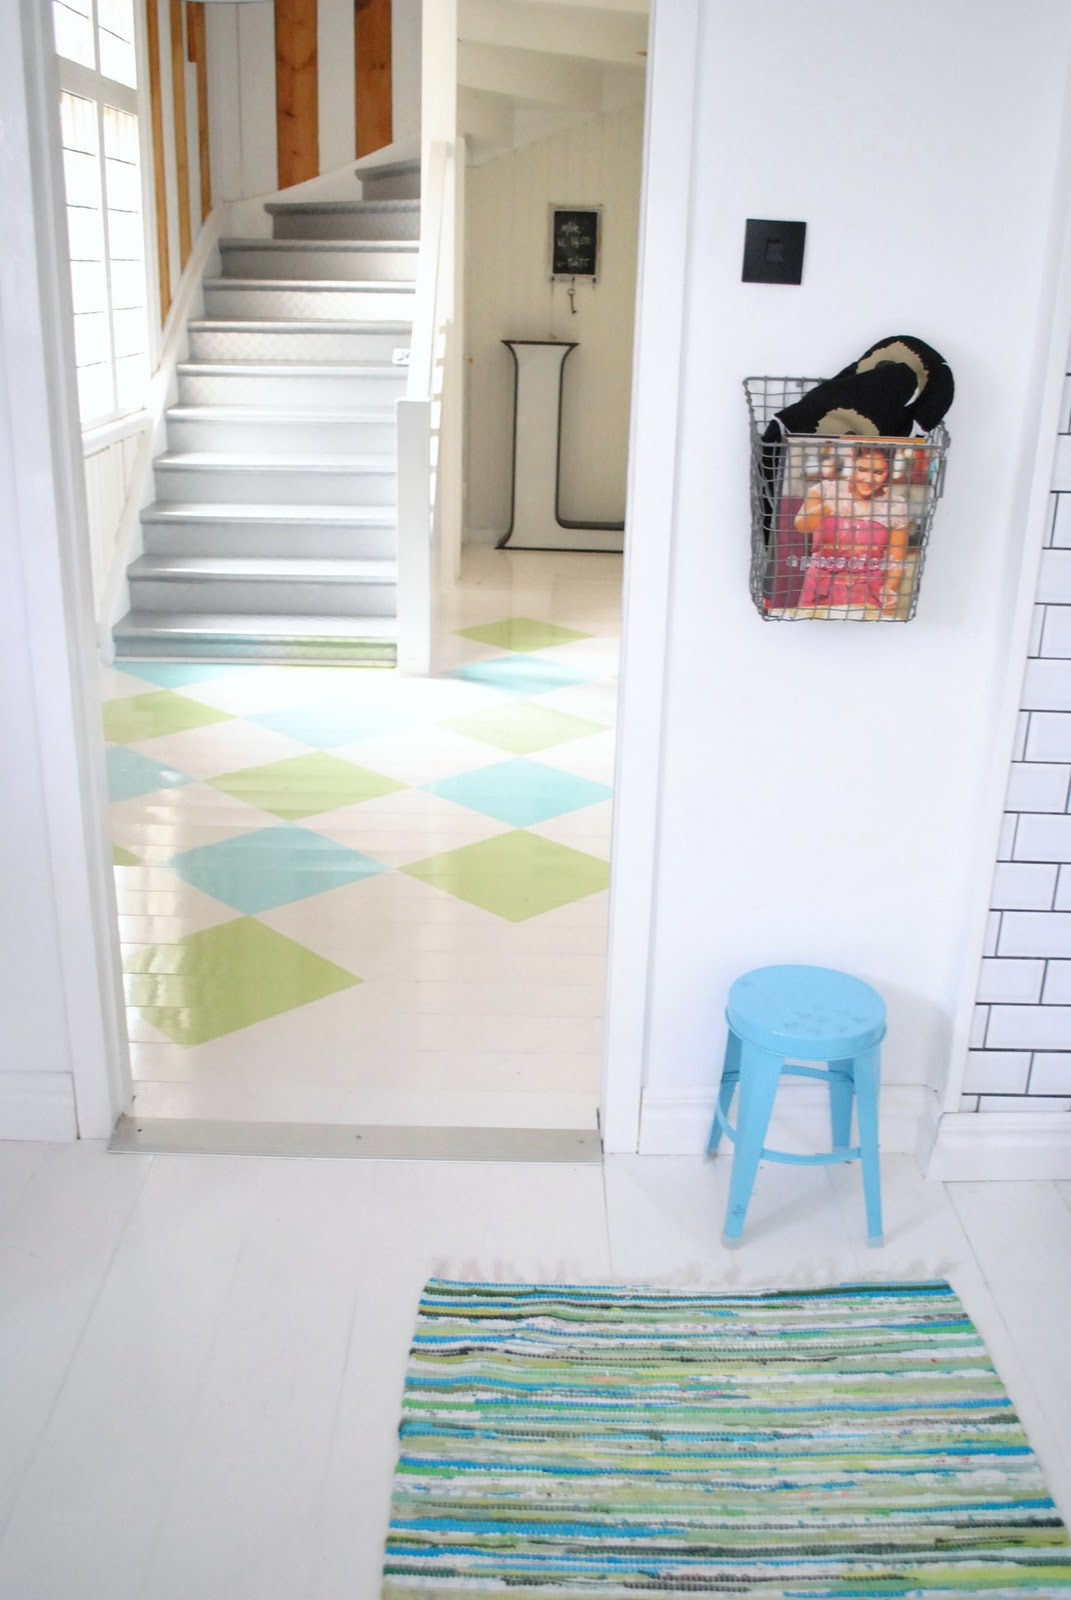 FLOOR SURFACES TOYOU CAN PAINT